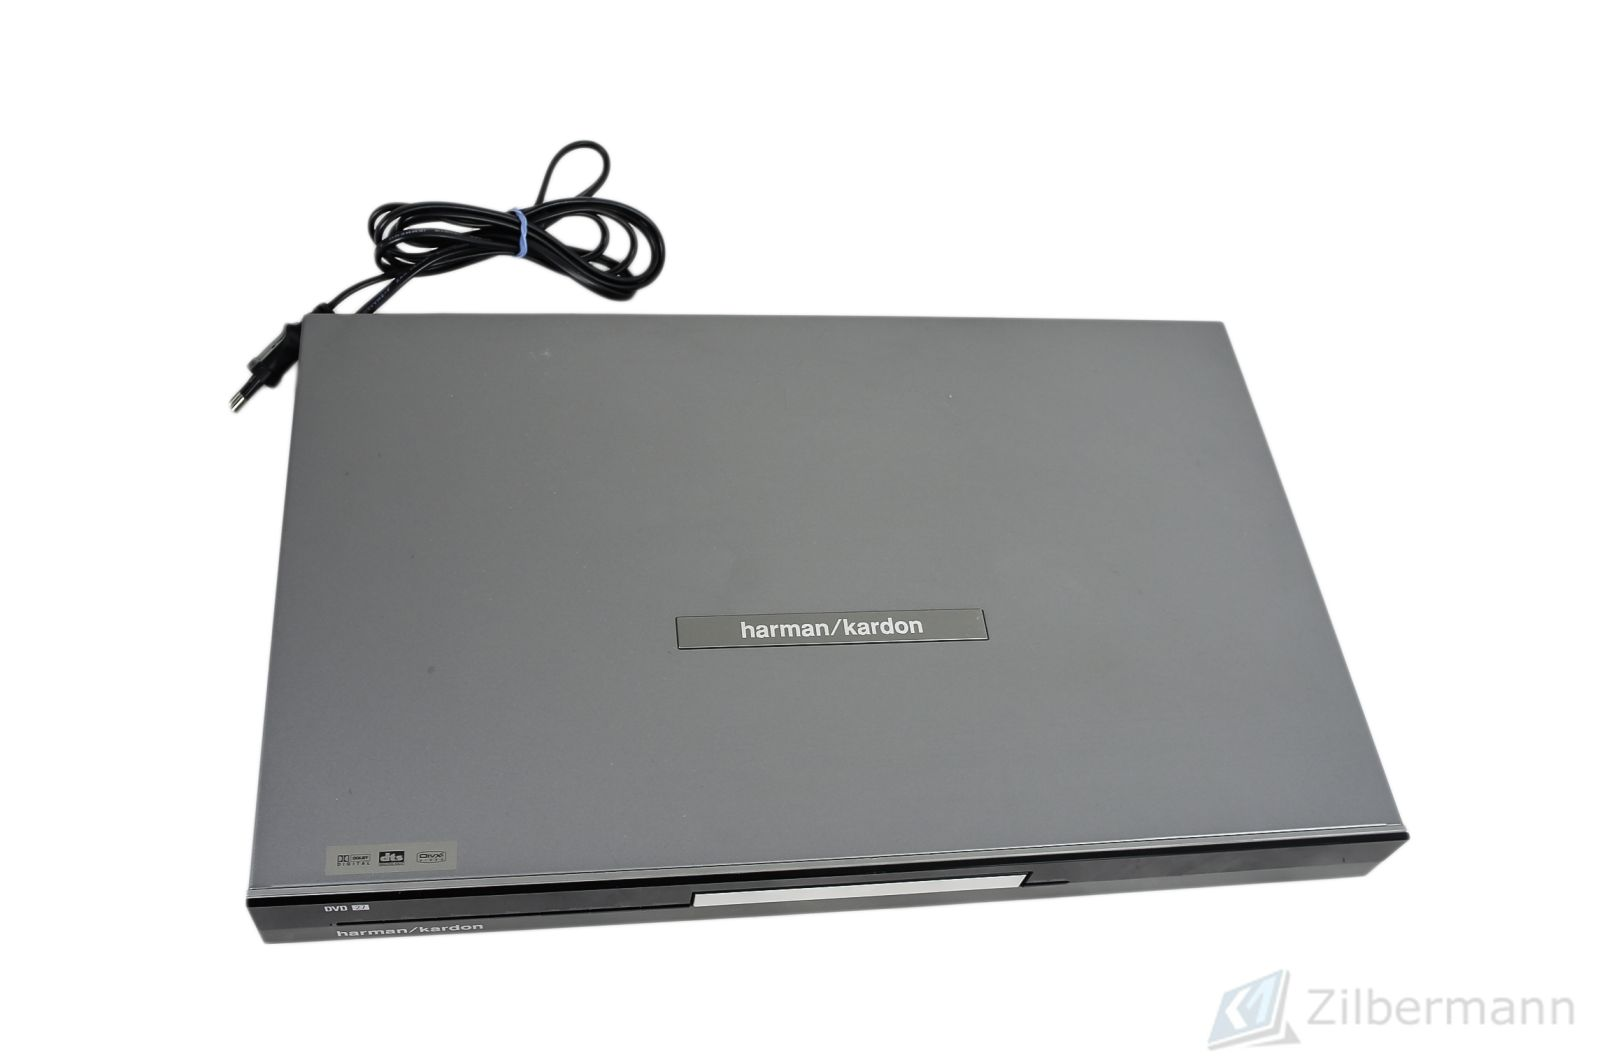 Harman_Kardon_DVD_27_DVD_Player_12